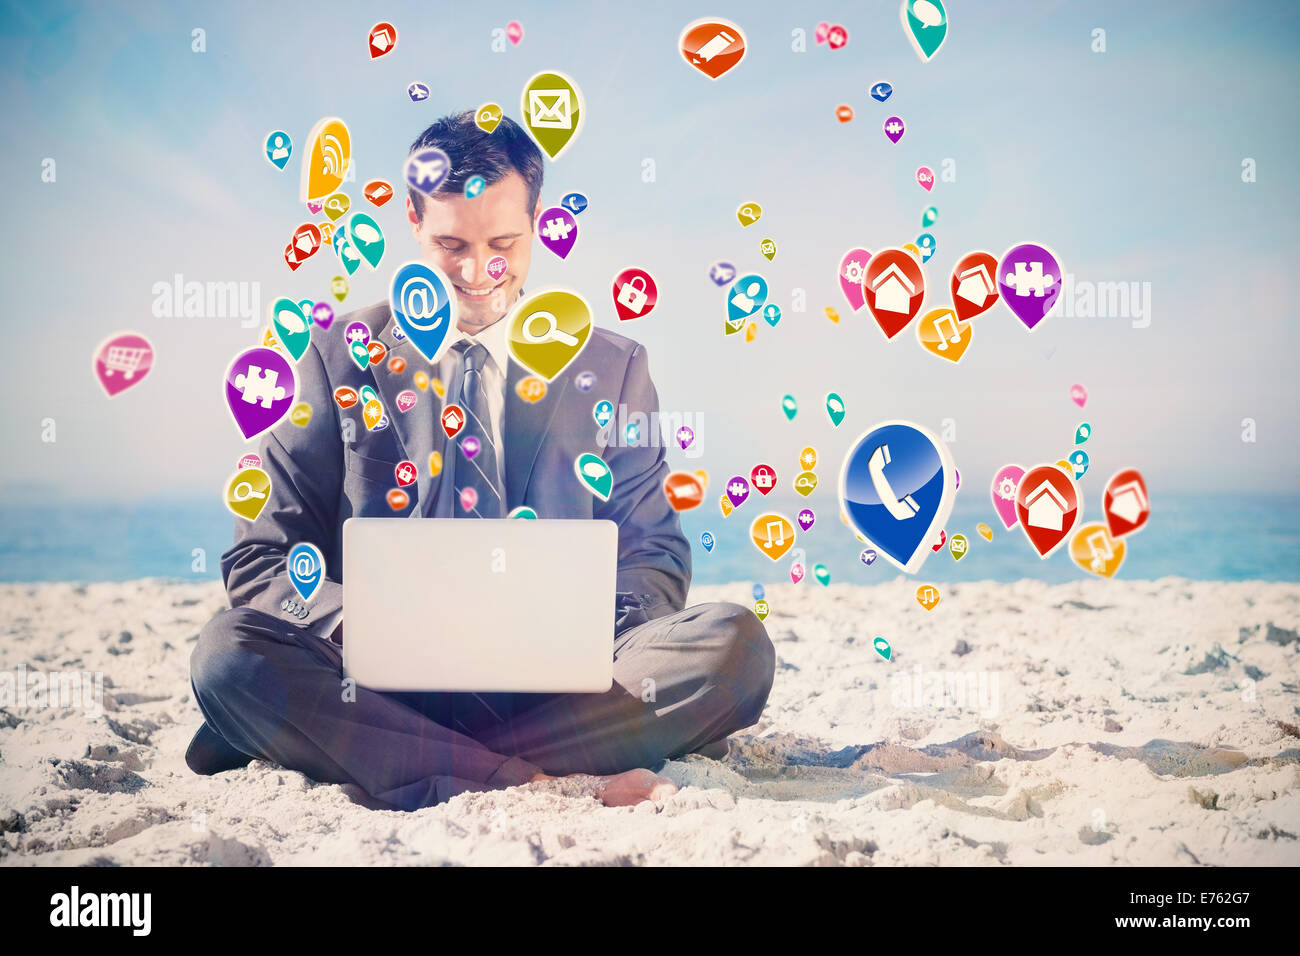 Composite image of young businessman with legs crossed typing on his laptop - Stock Image